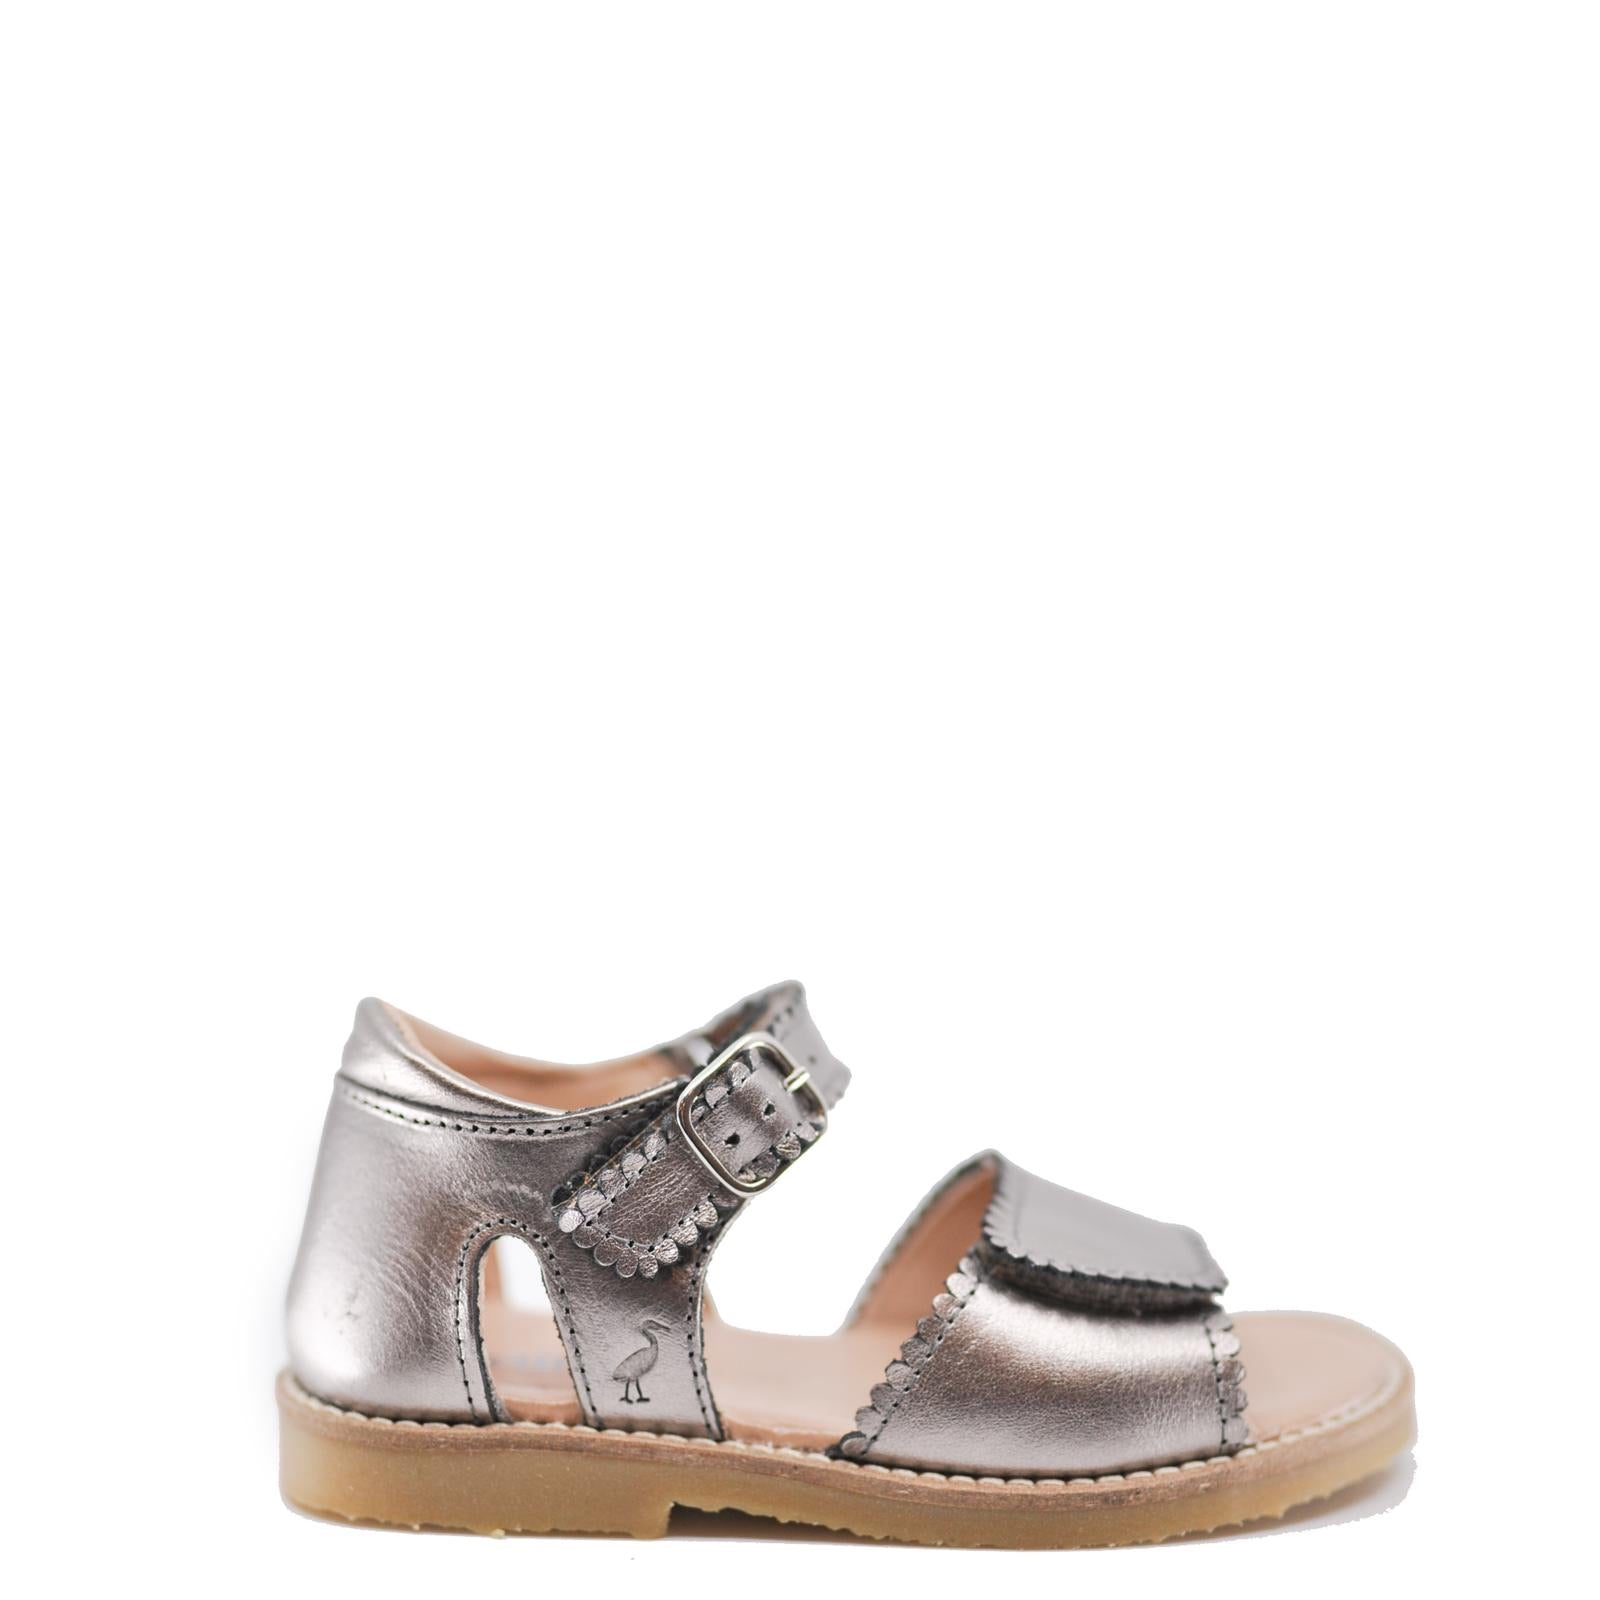 Petit Nord Gunmetal Scalloped Sandal-Tassel Children Shoes